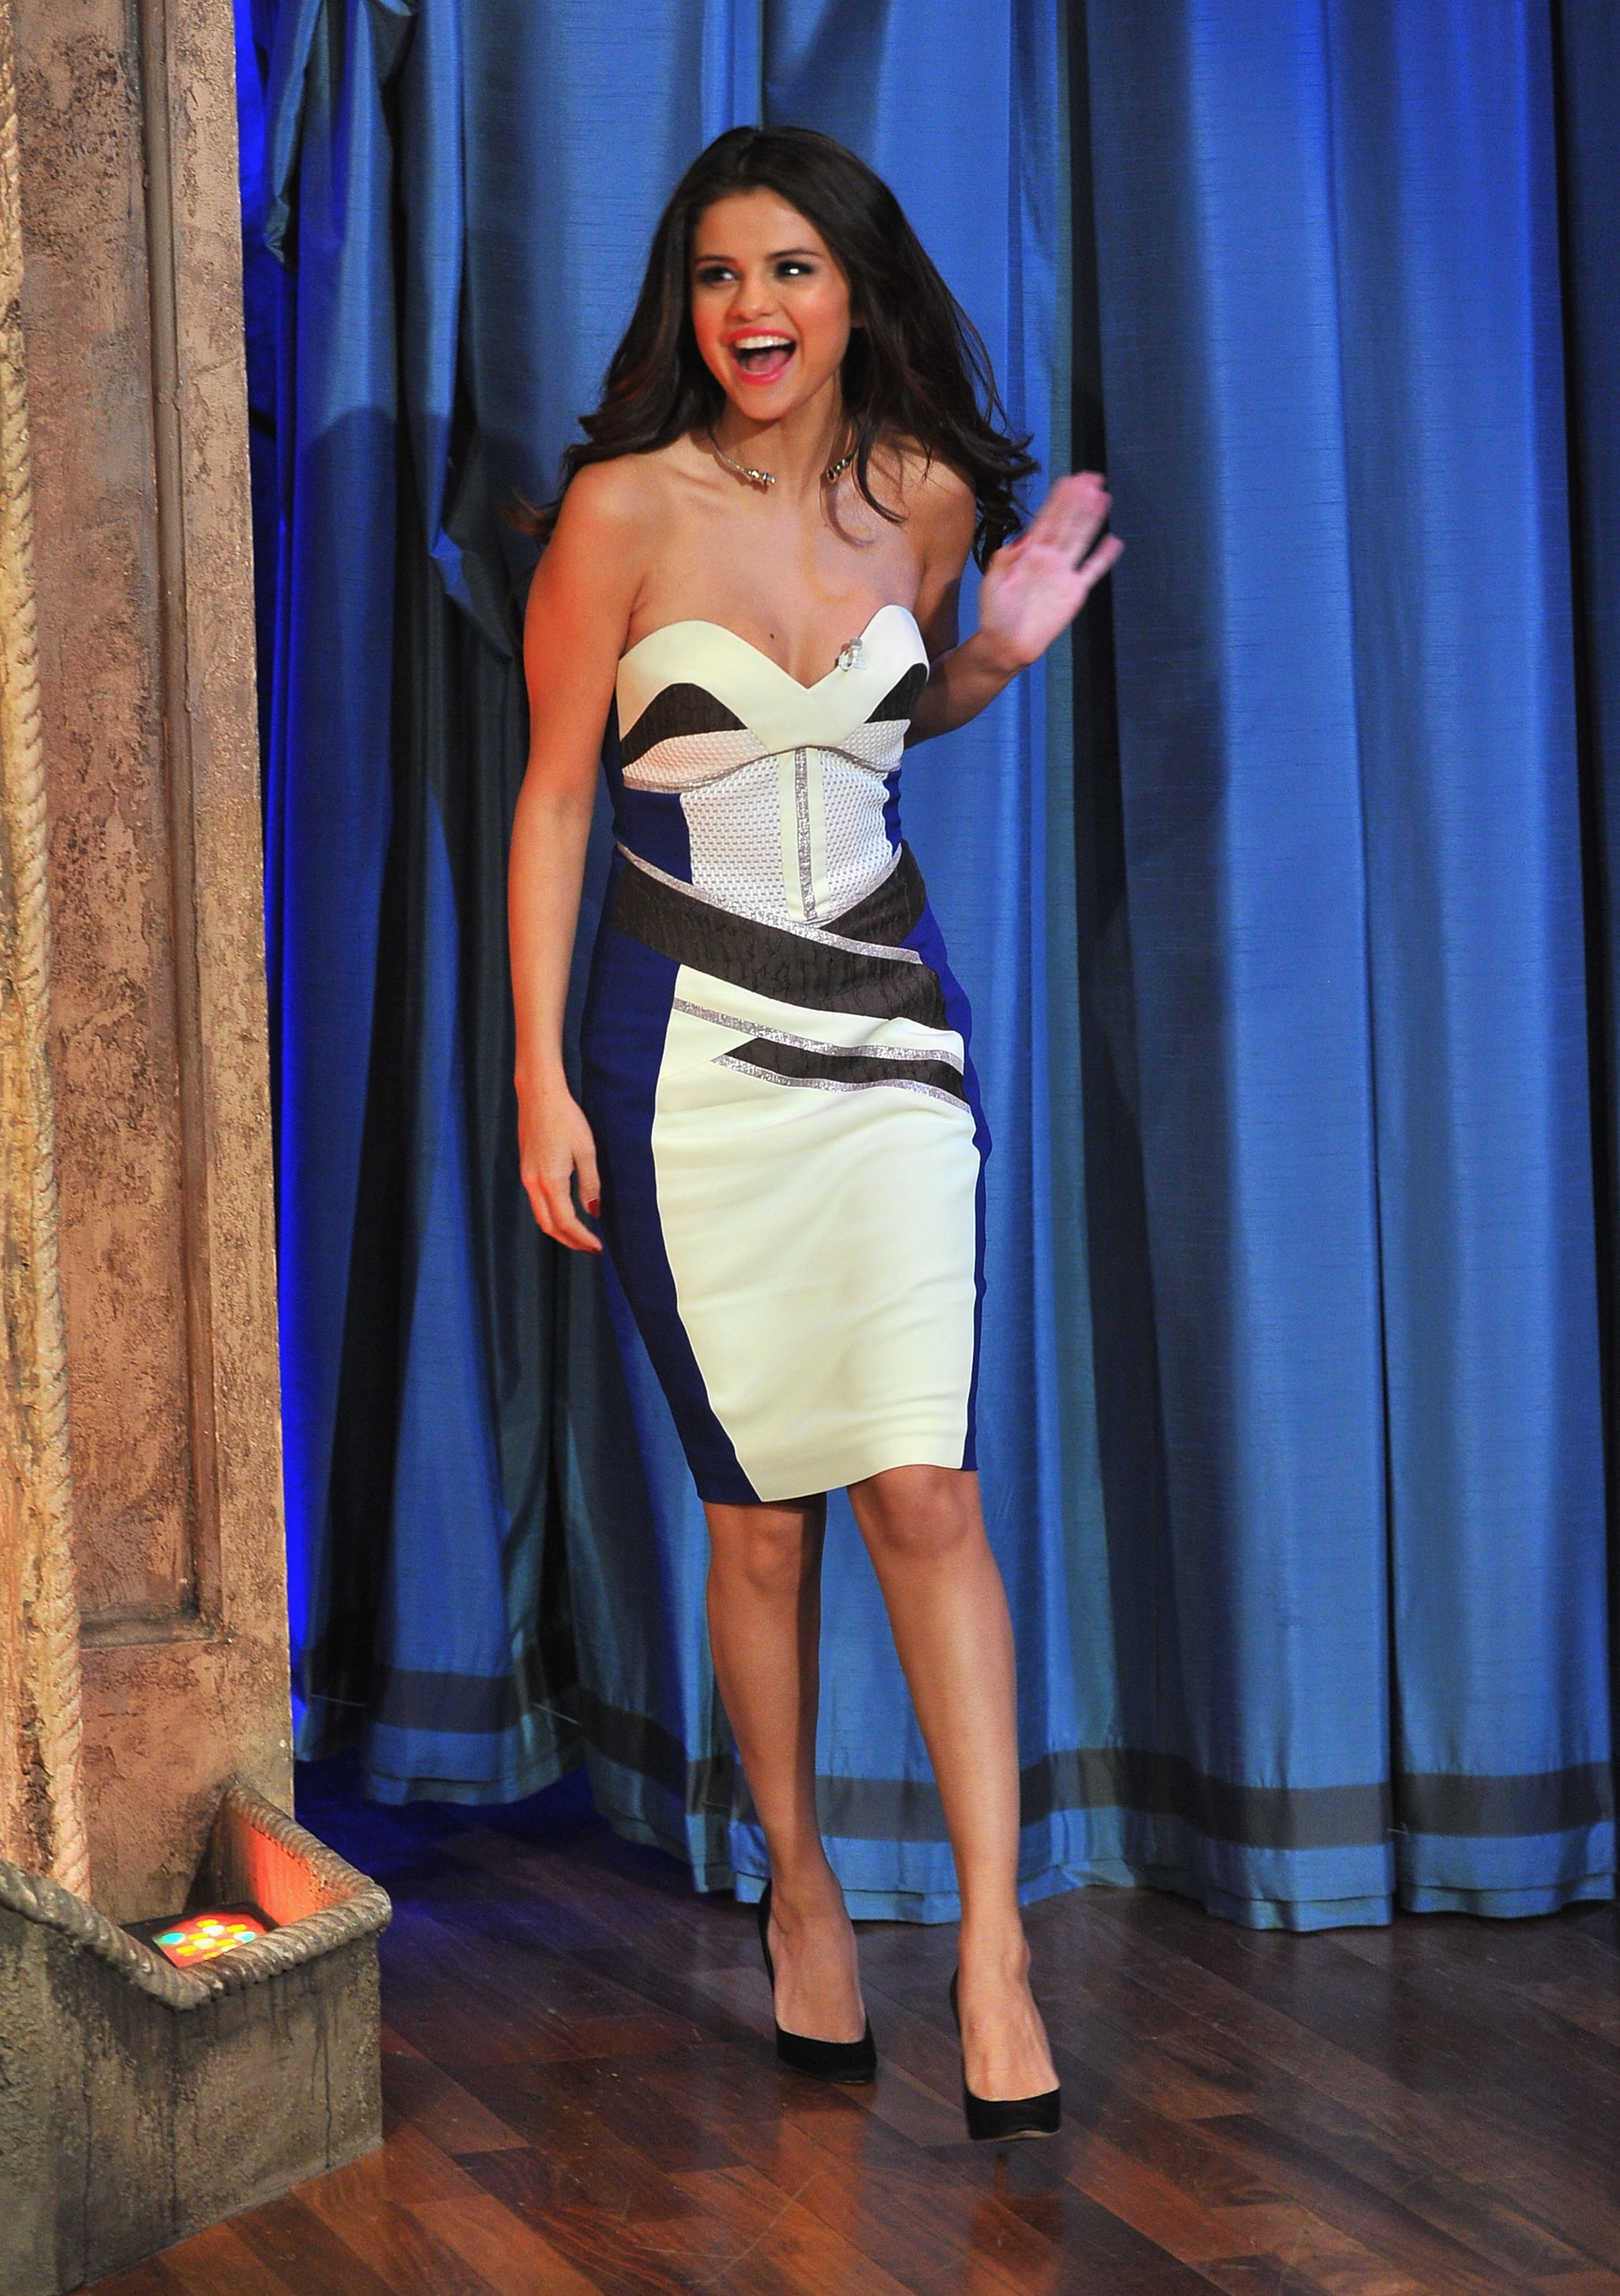 For her appearance on Late Night With Jimmy Fallon, Selena Gomez showed off her décolletage in a strapless Antonio Berardi dress and Brian Atwood pumps.